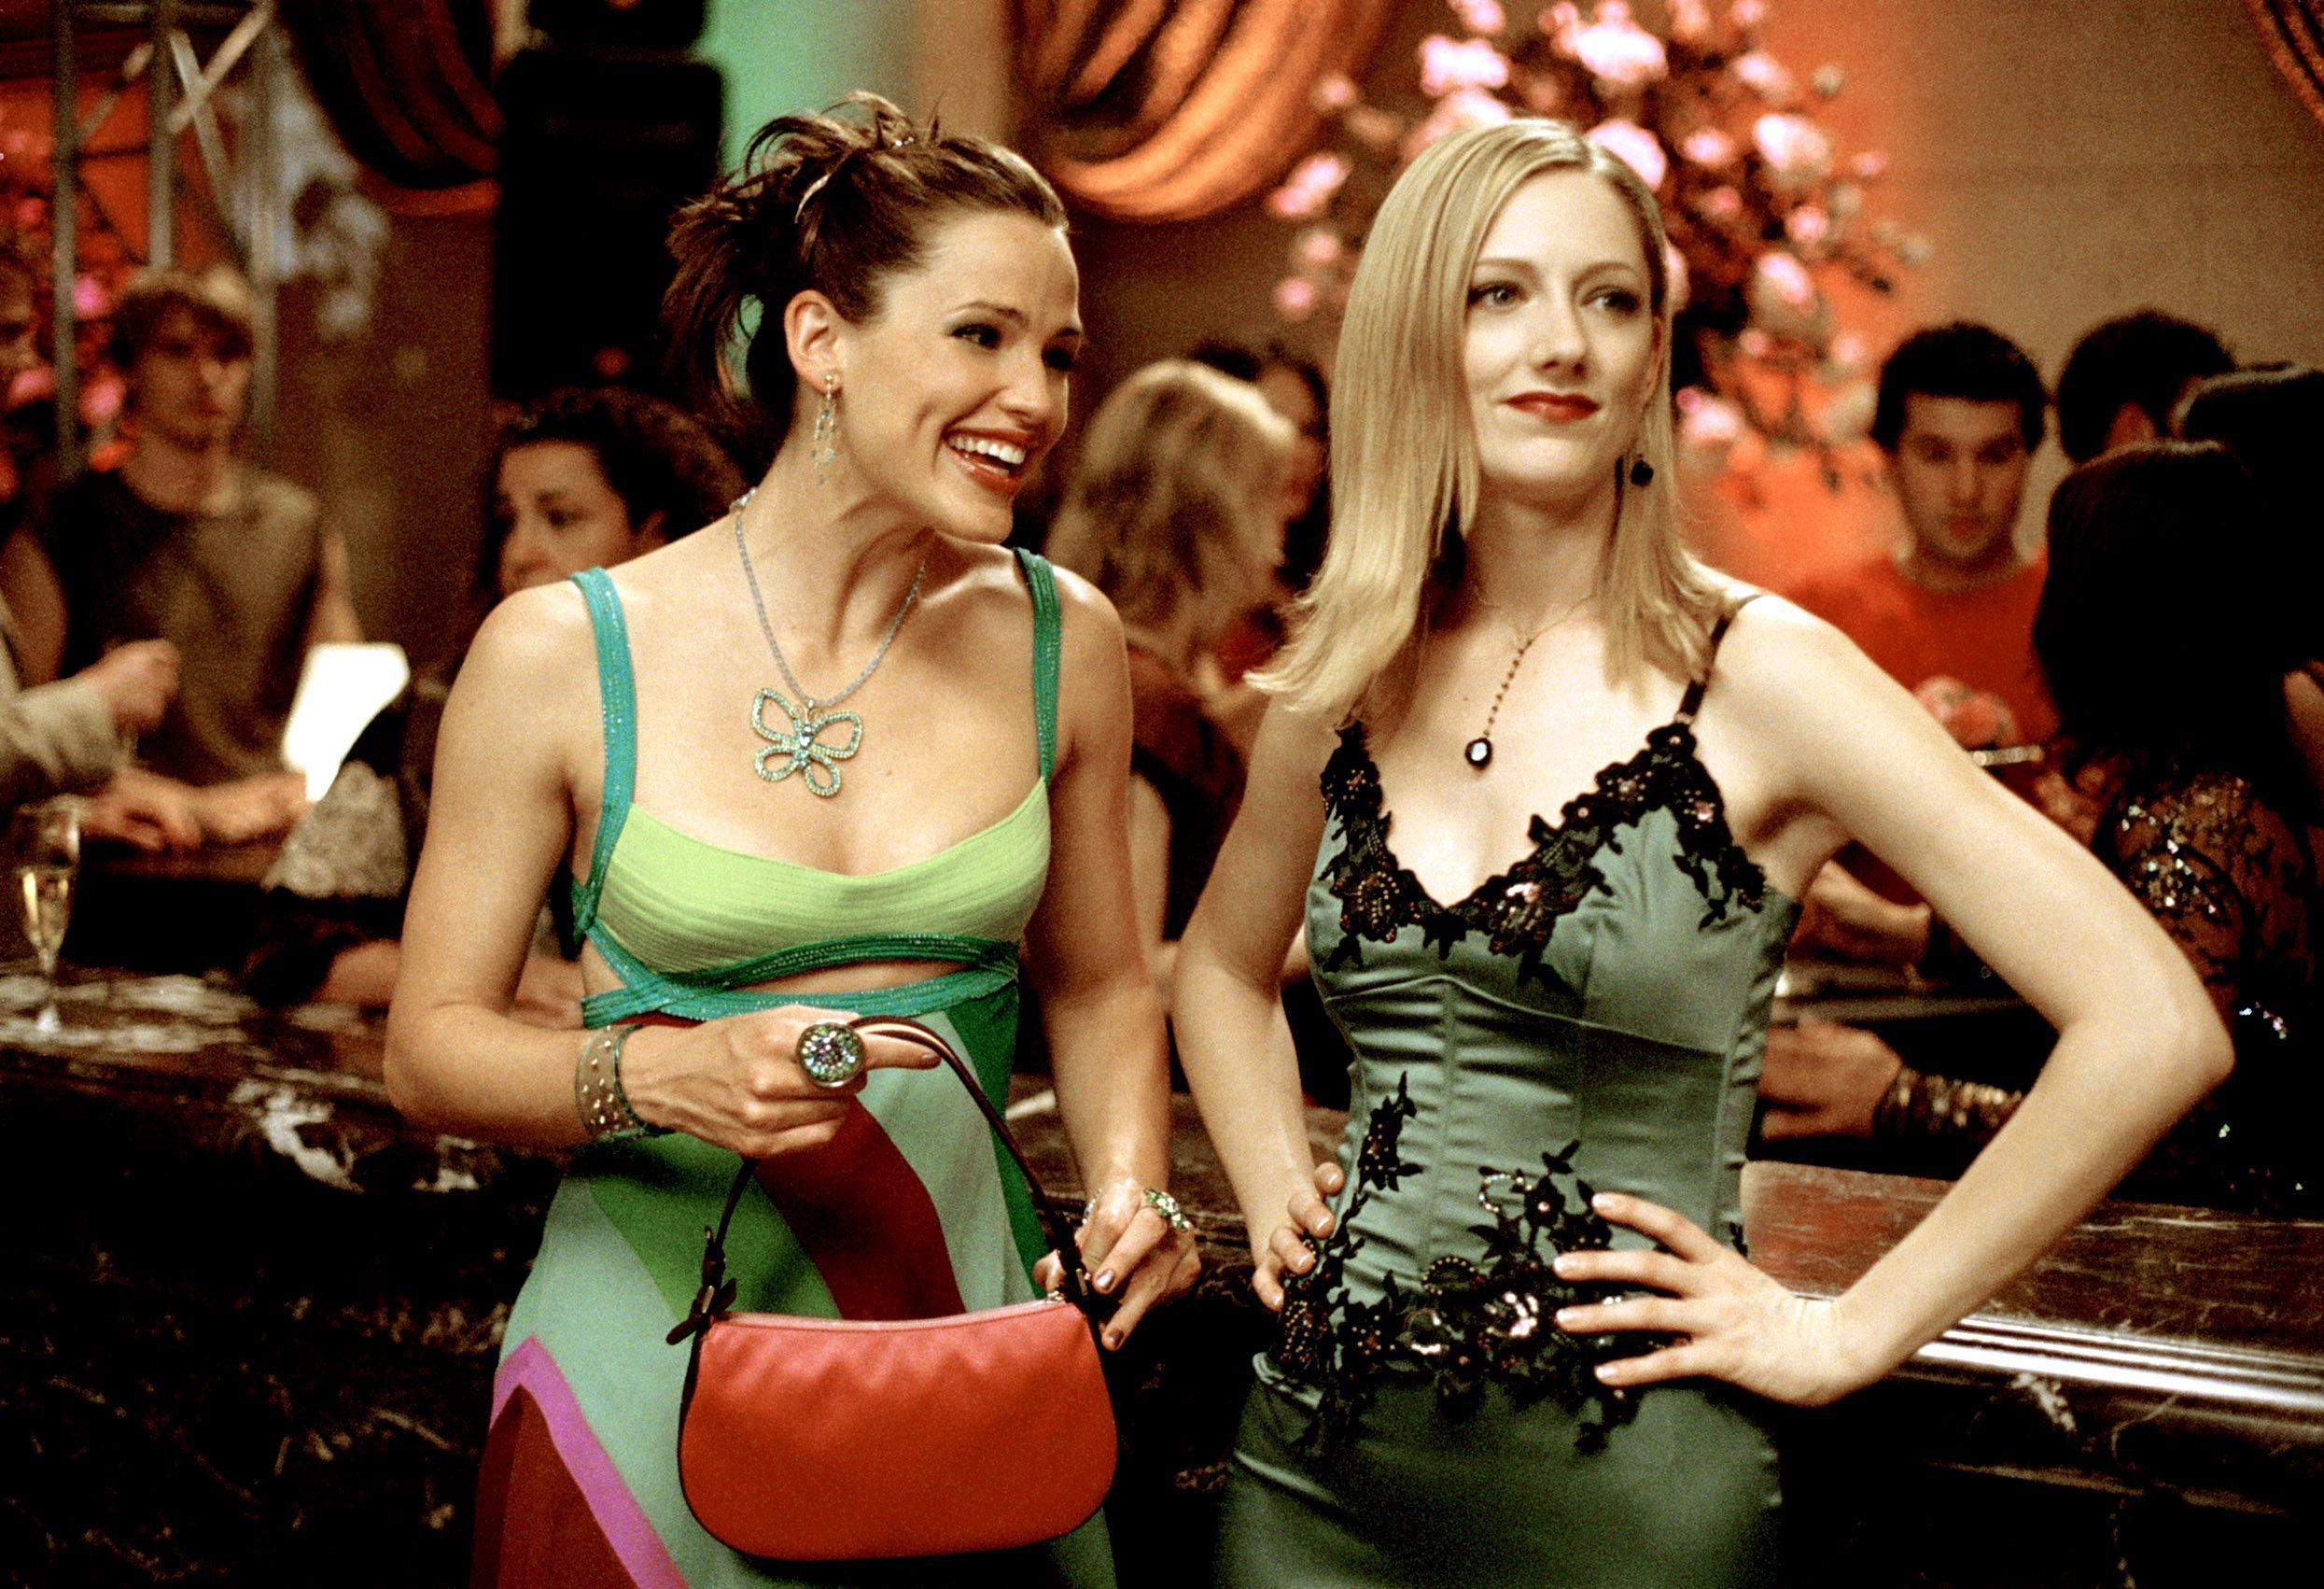 Movie Quiz: How Well Do You Remember 13 Going On 30? - Fame10